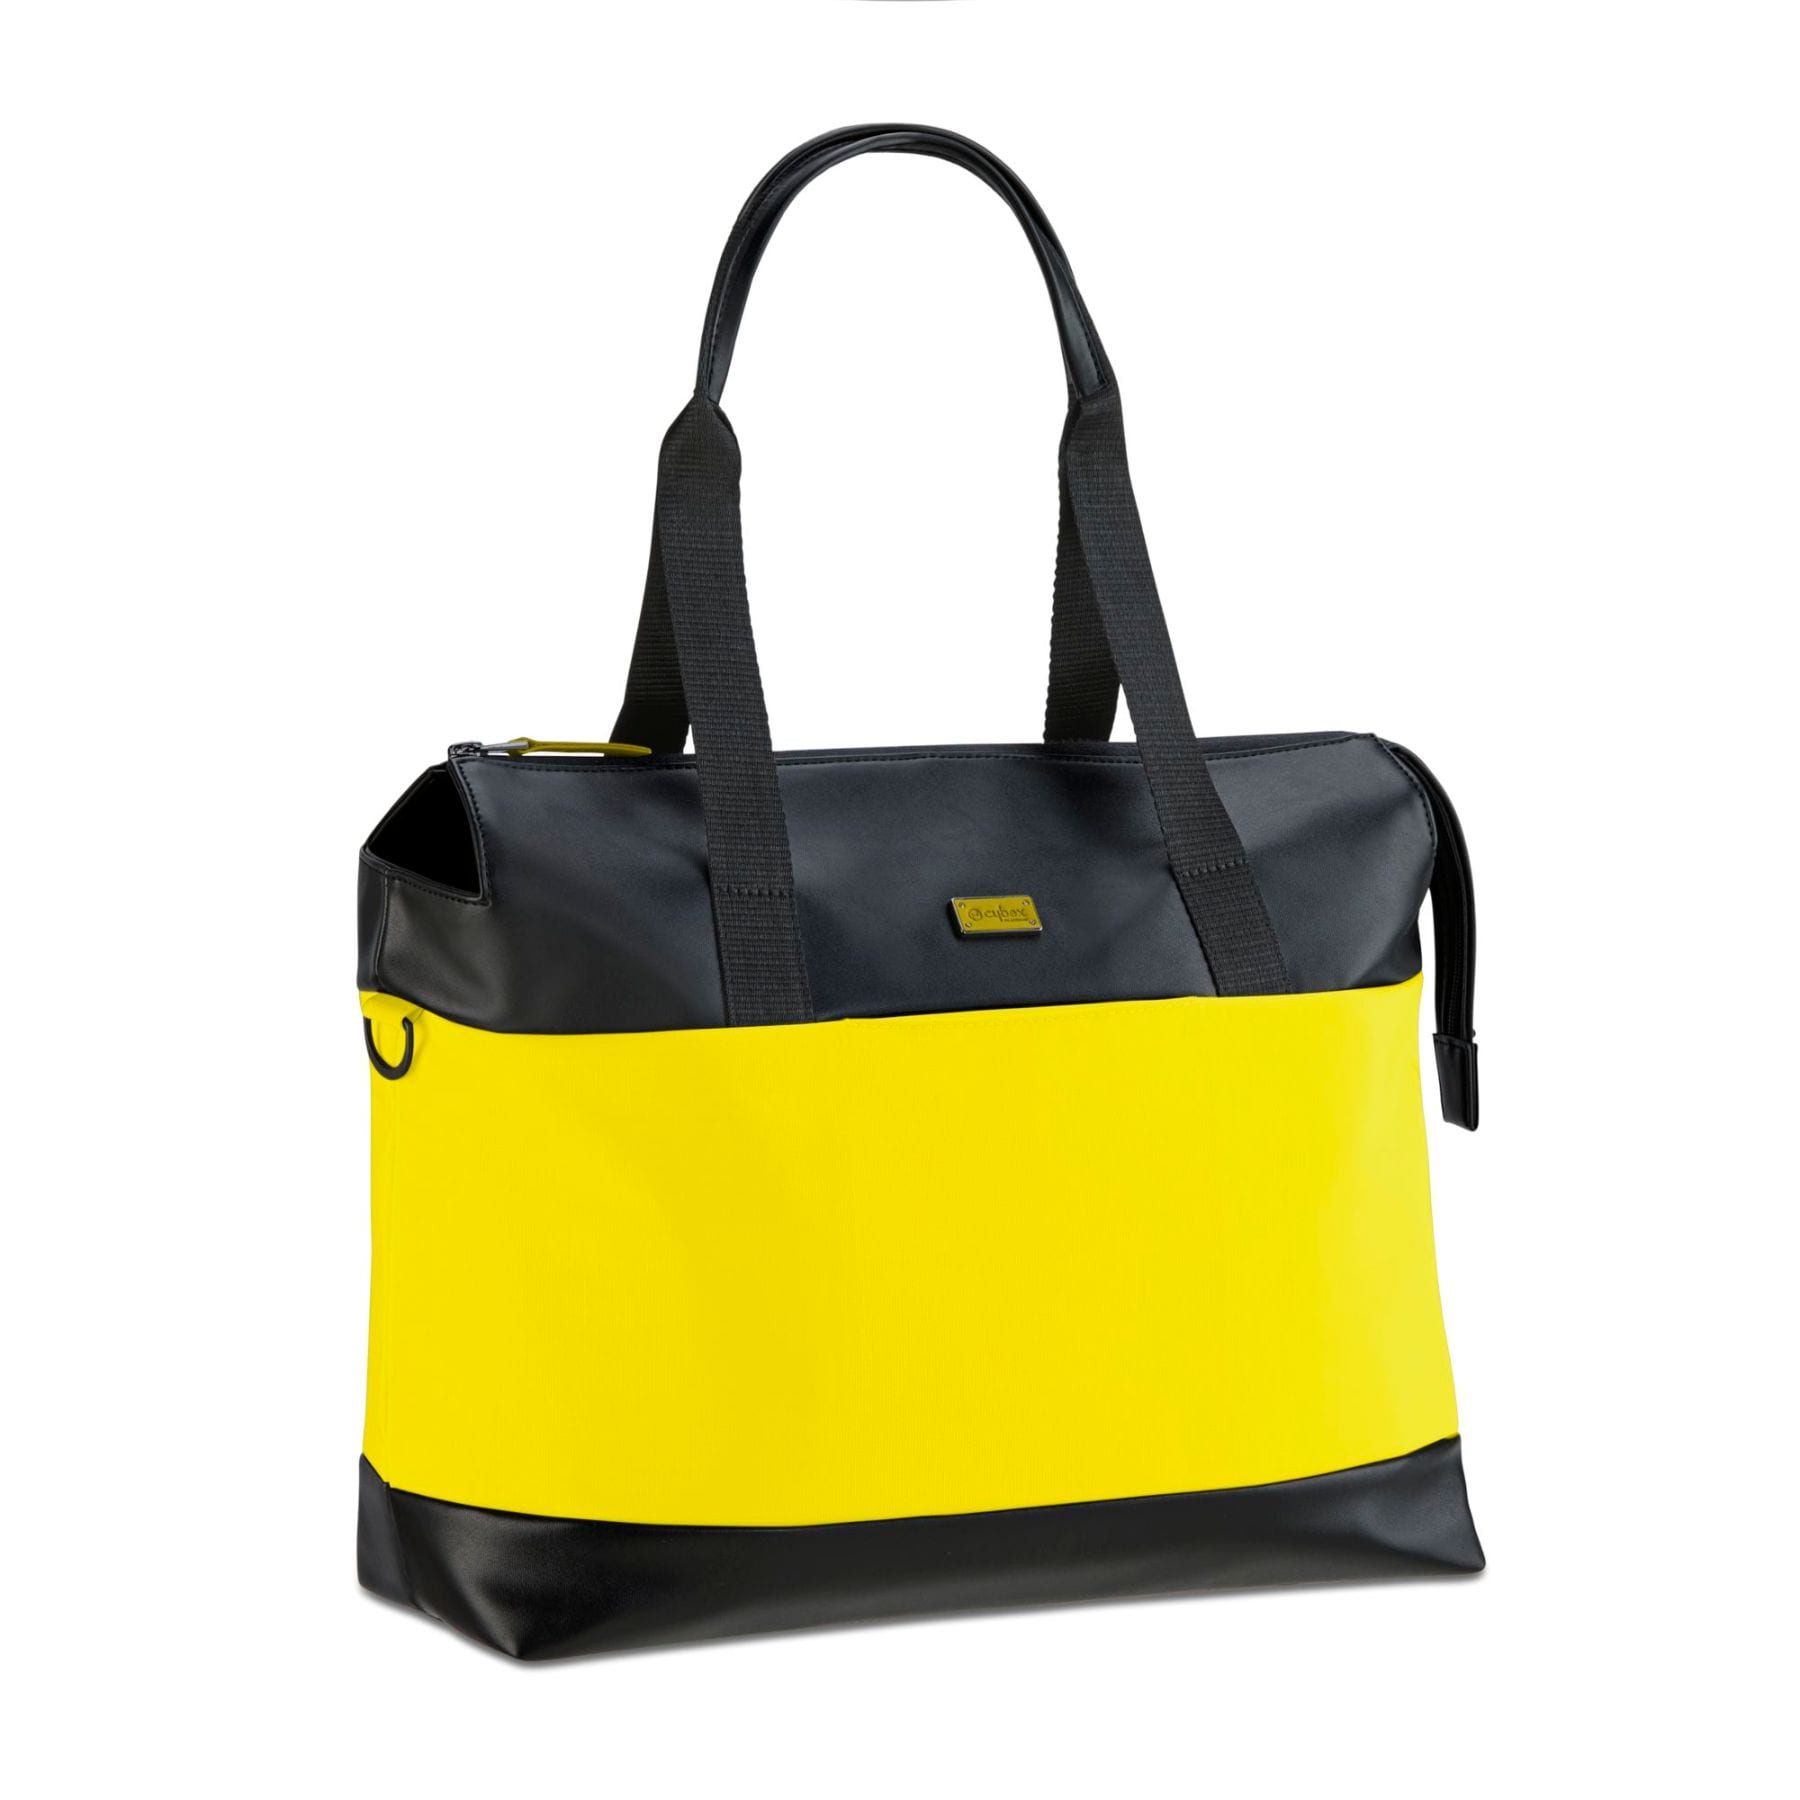 Cybex Mios Changing Bag - Mustard Yellow